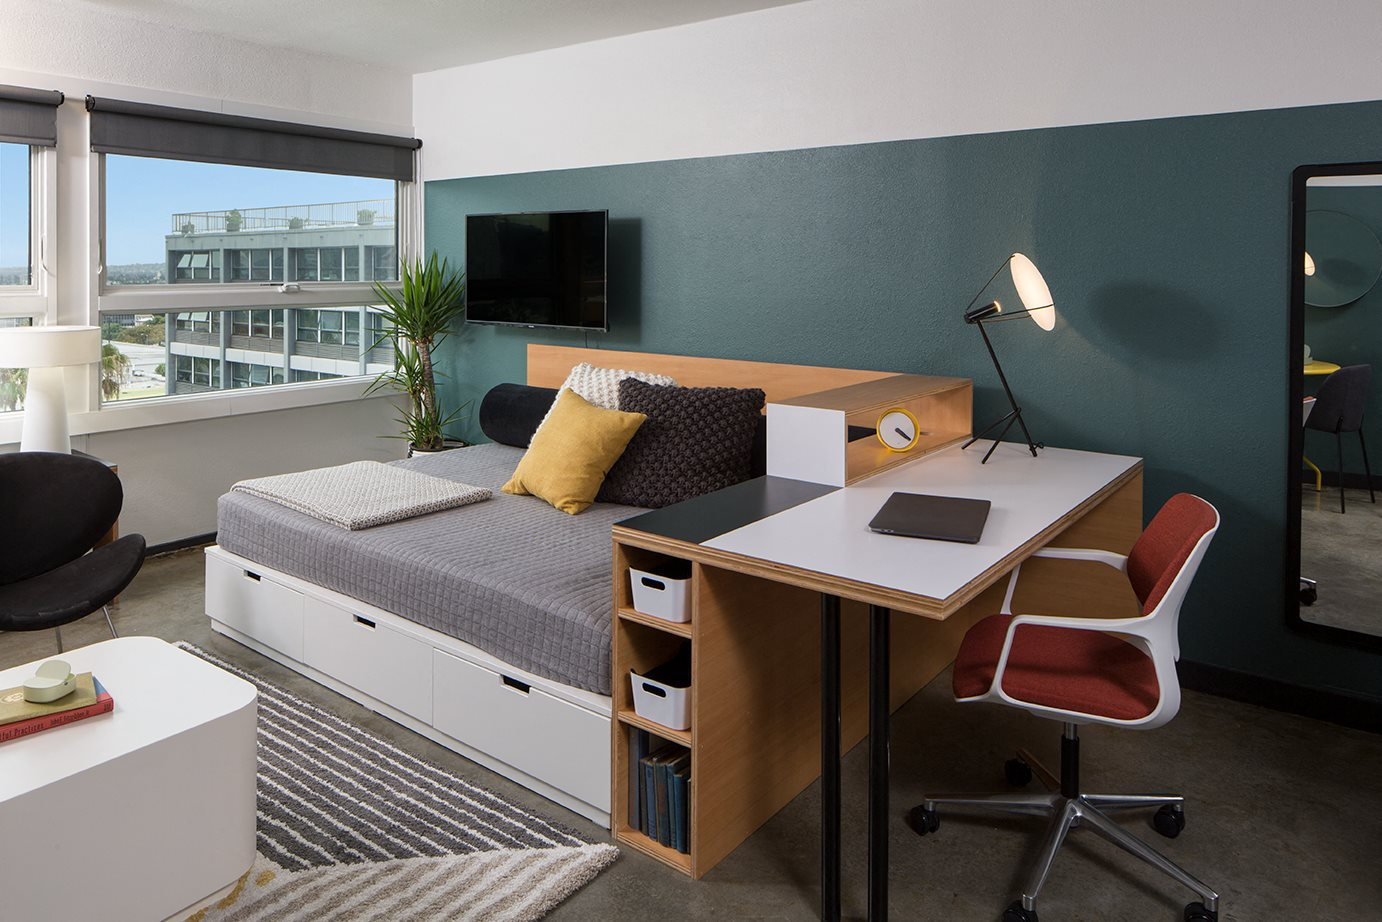 newly renovated studios | The Flat Apartments in Los Angeles, CA